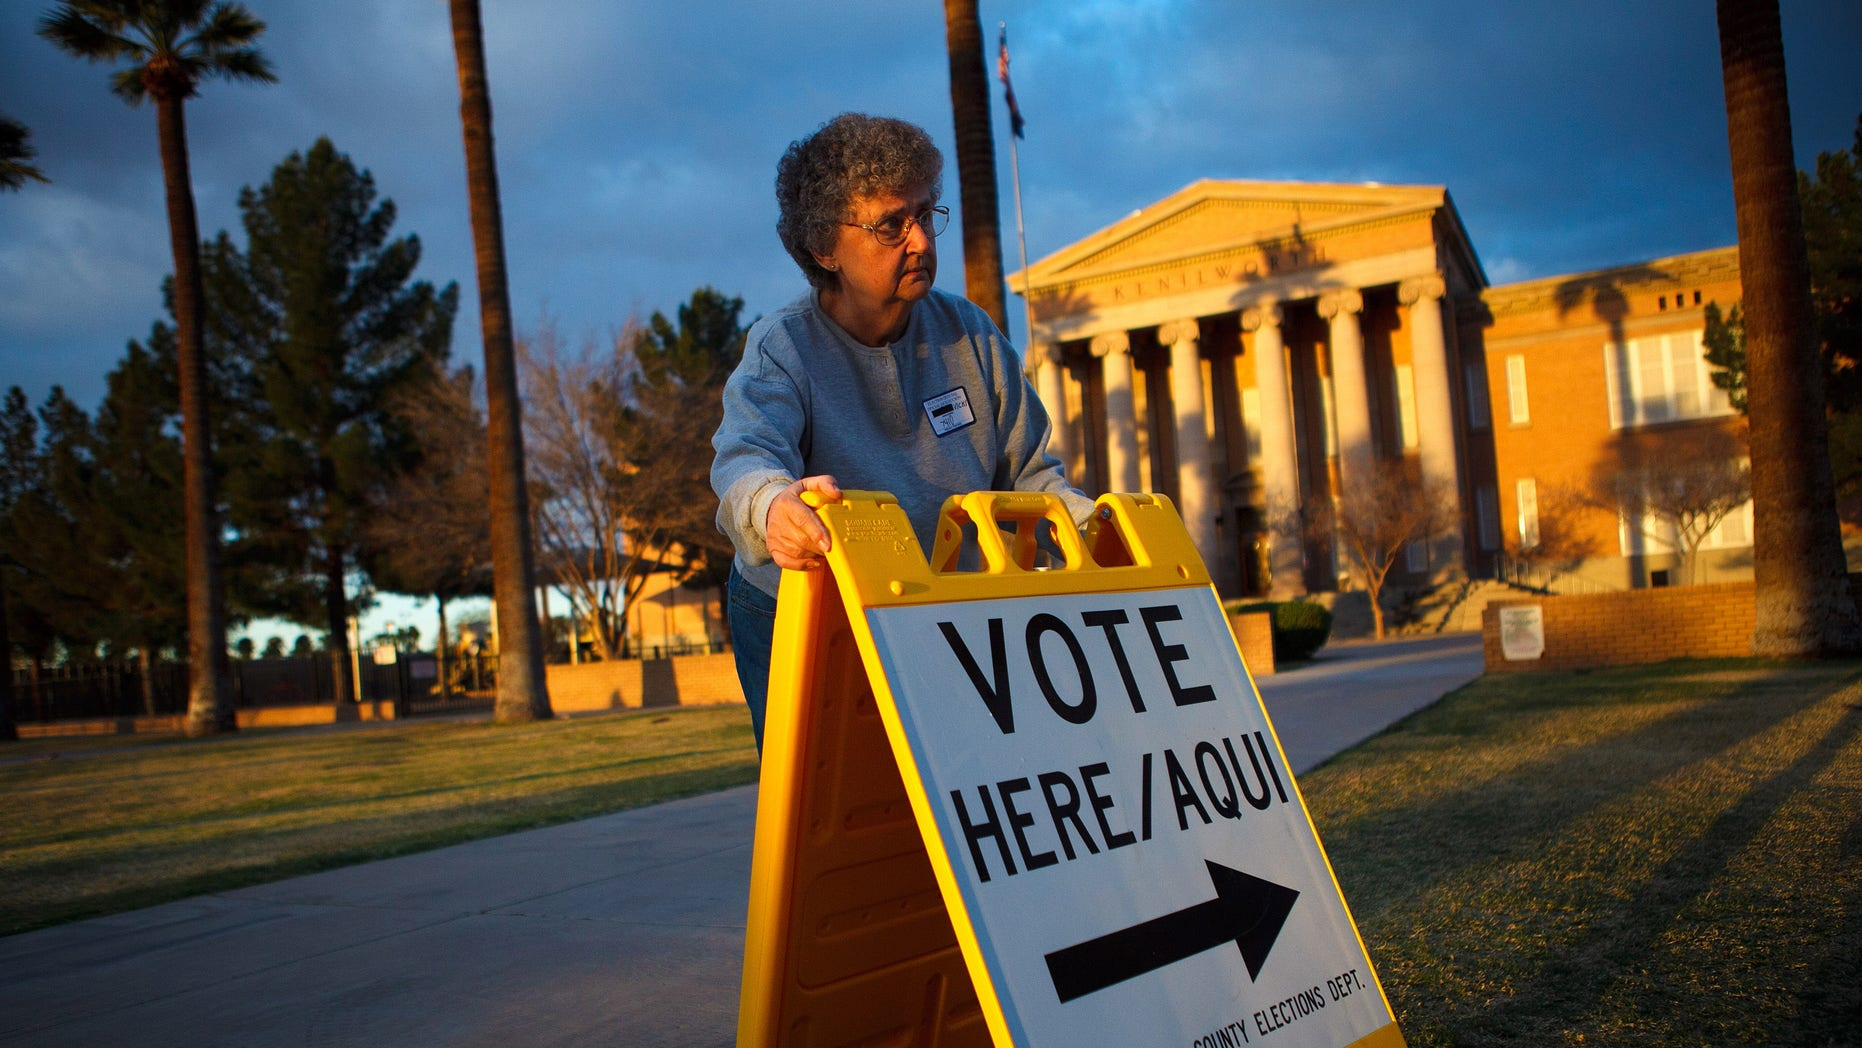 PHOENIX, AZ - FEBRUARY 28:  Election day volunteer Vicki Groff places a sign to direct voters to a polling station at Kenilworth School February 28, 2012 in Phoenix, Arizona. Voters in this state participate in choosing who will be the Republican candidate to contest President Barack Obama in the general election.  (Photo by Jonathan Gibby/Getty Images)